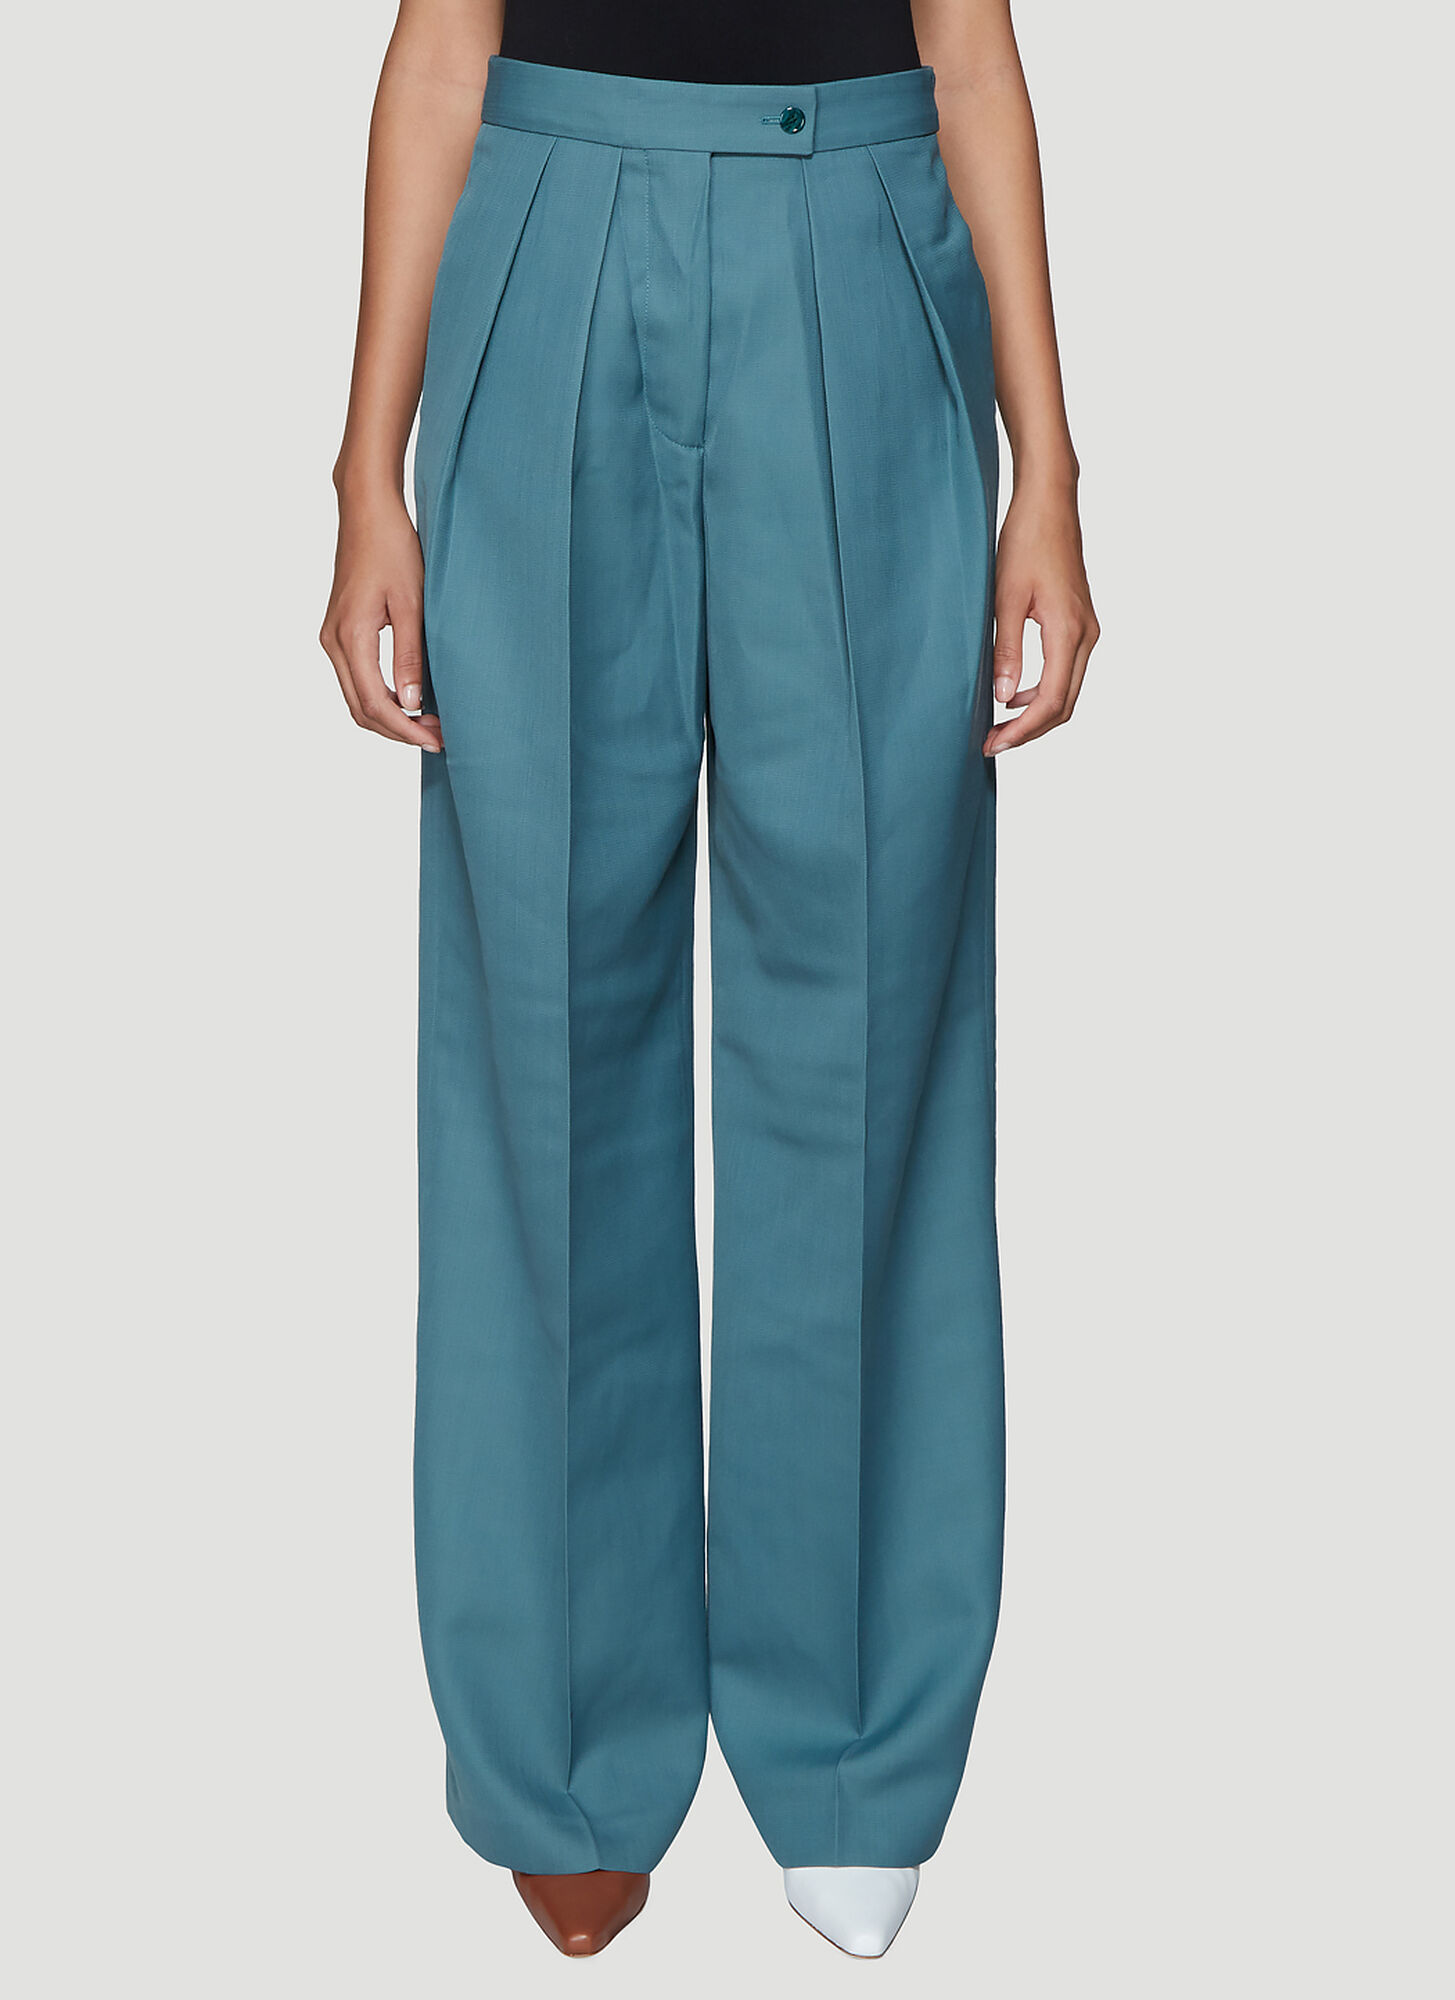 Acne Studios Pristine Suit Pants in Blue